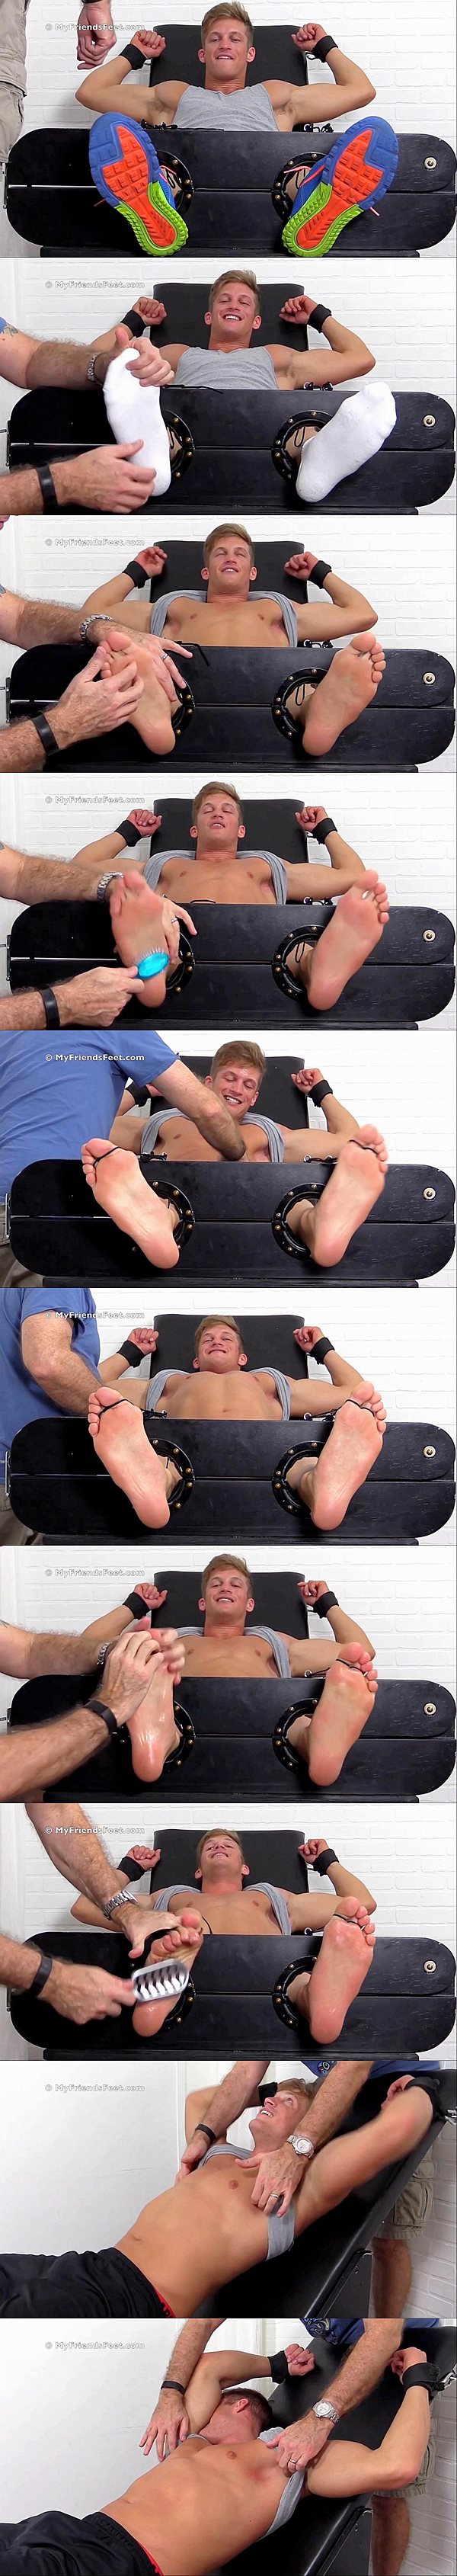 Hot blond muscle jock Mike gets foot worshiped and tickled hard at Myfriendsfeet